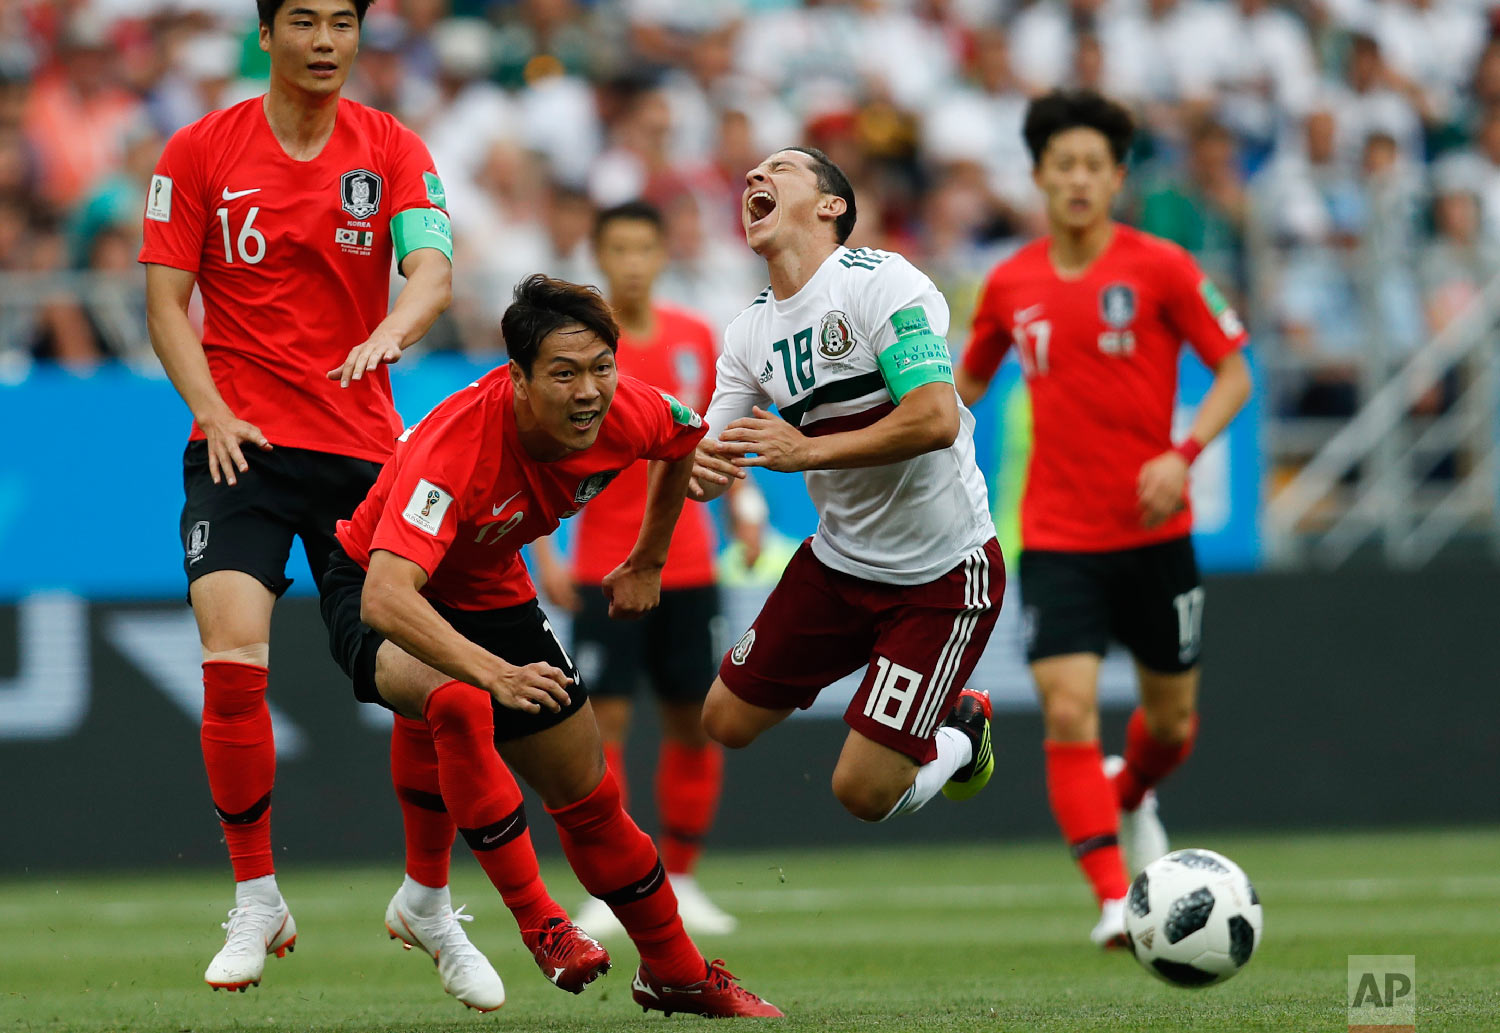 Mexico's Andres Guardado, right, challenges for the ball with South Korea's Kim Young-gwon during the group F match between Mexico and South Korea at the 2018 soccer World Cup in the Rostov Arena in Rostov-on-Don, Russia, Saturday, June 23, 2018. (AP Photo/Eduardo Verdugo)